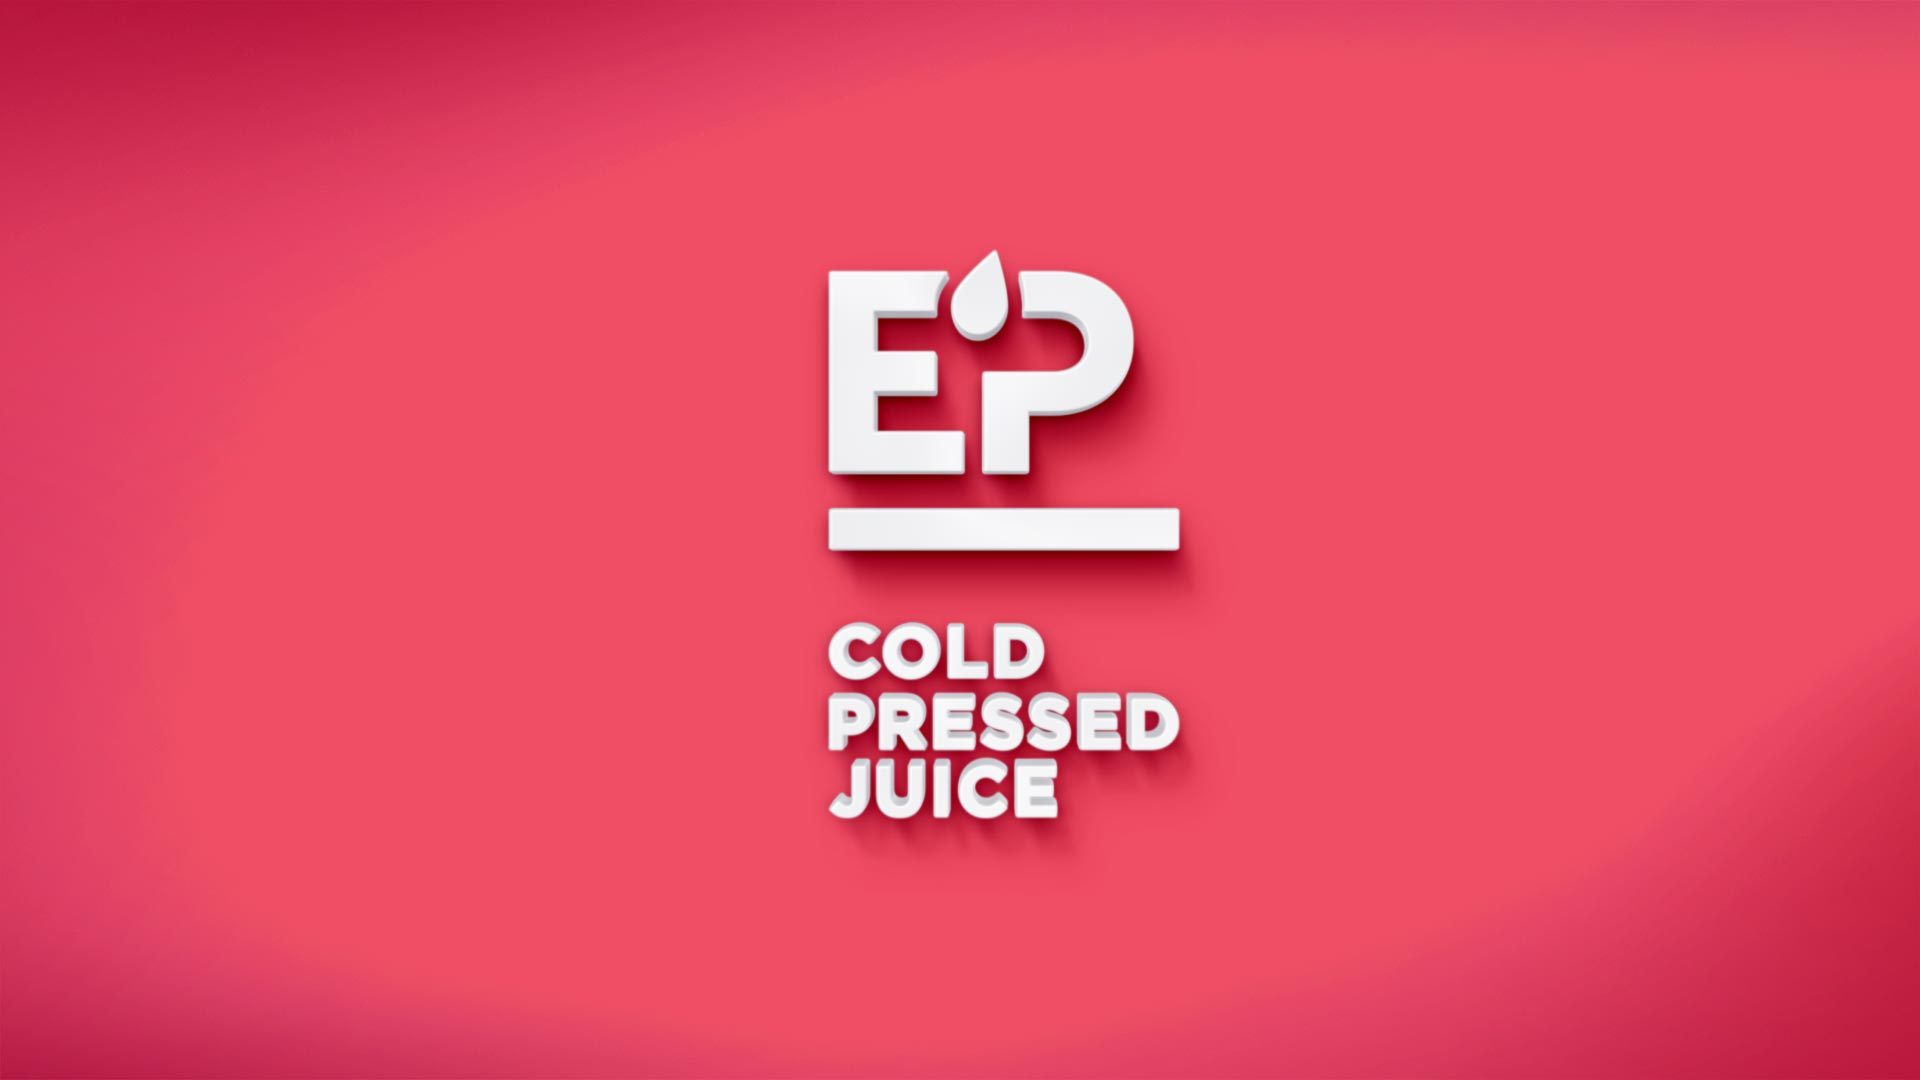 EP Pressed Juice logo 3D